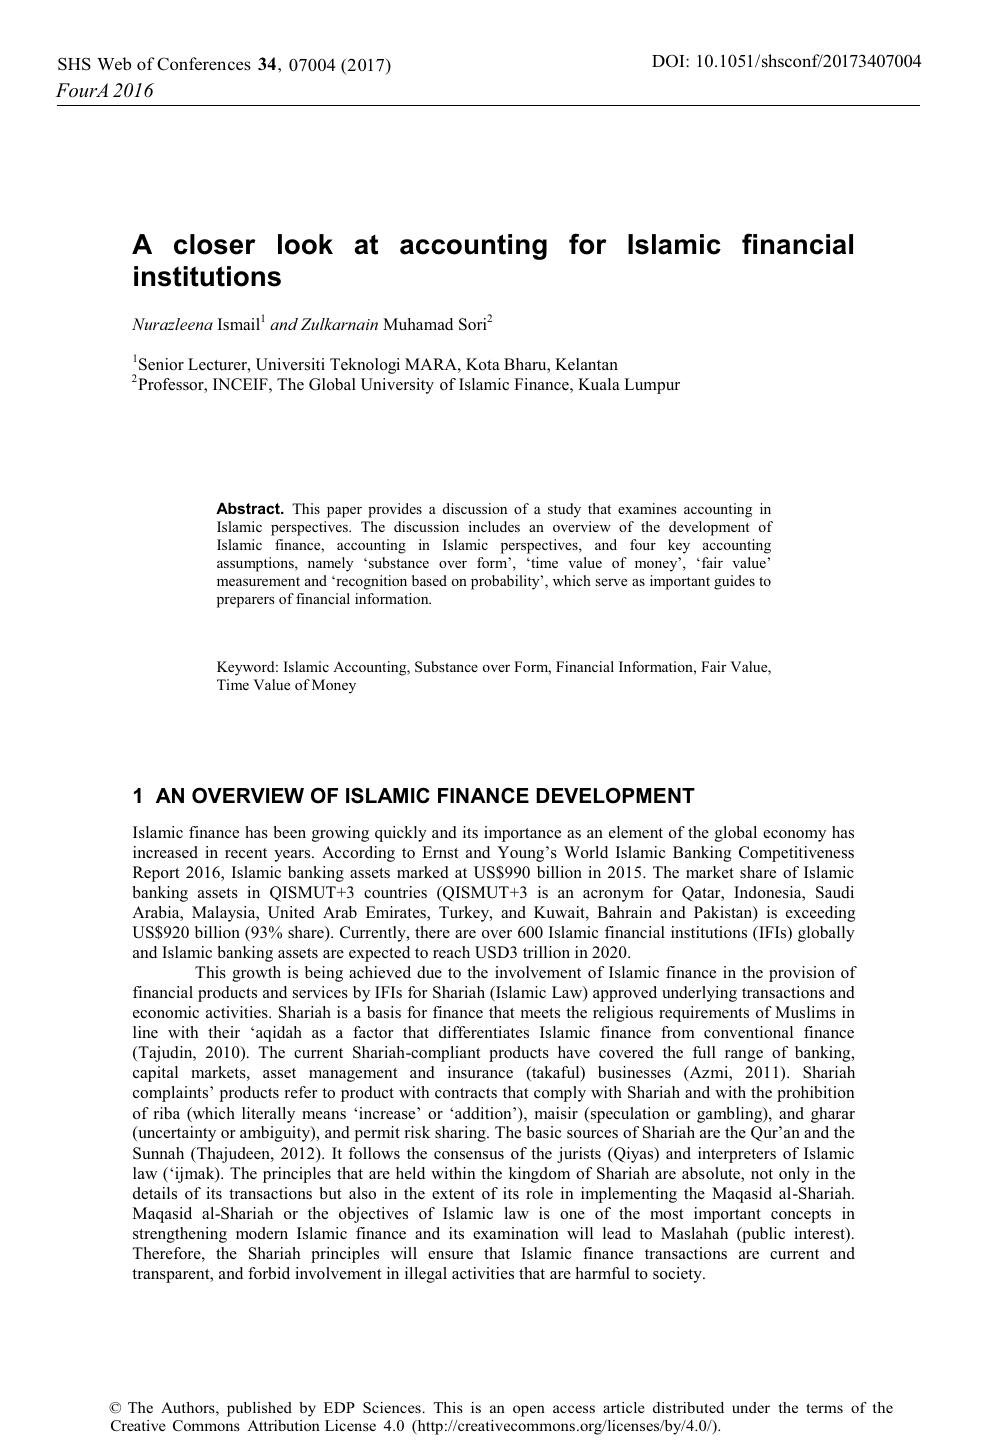 research paper on accounting and finance